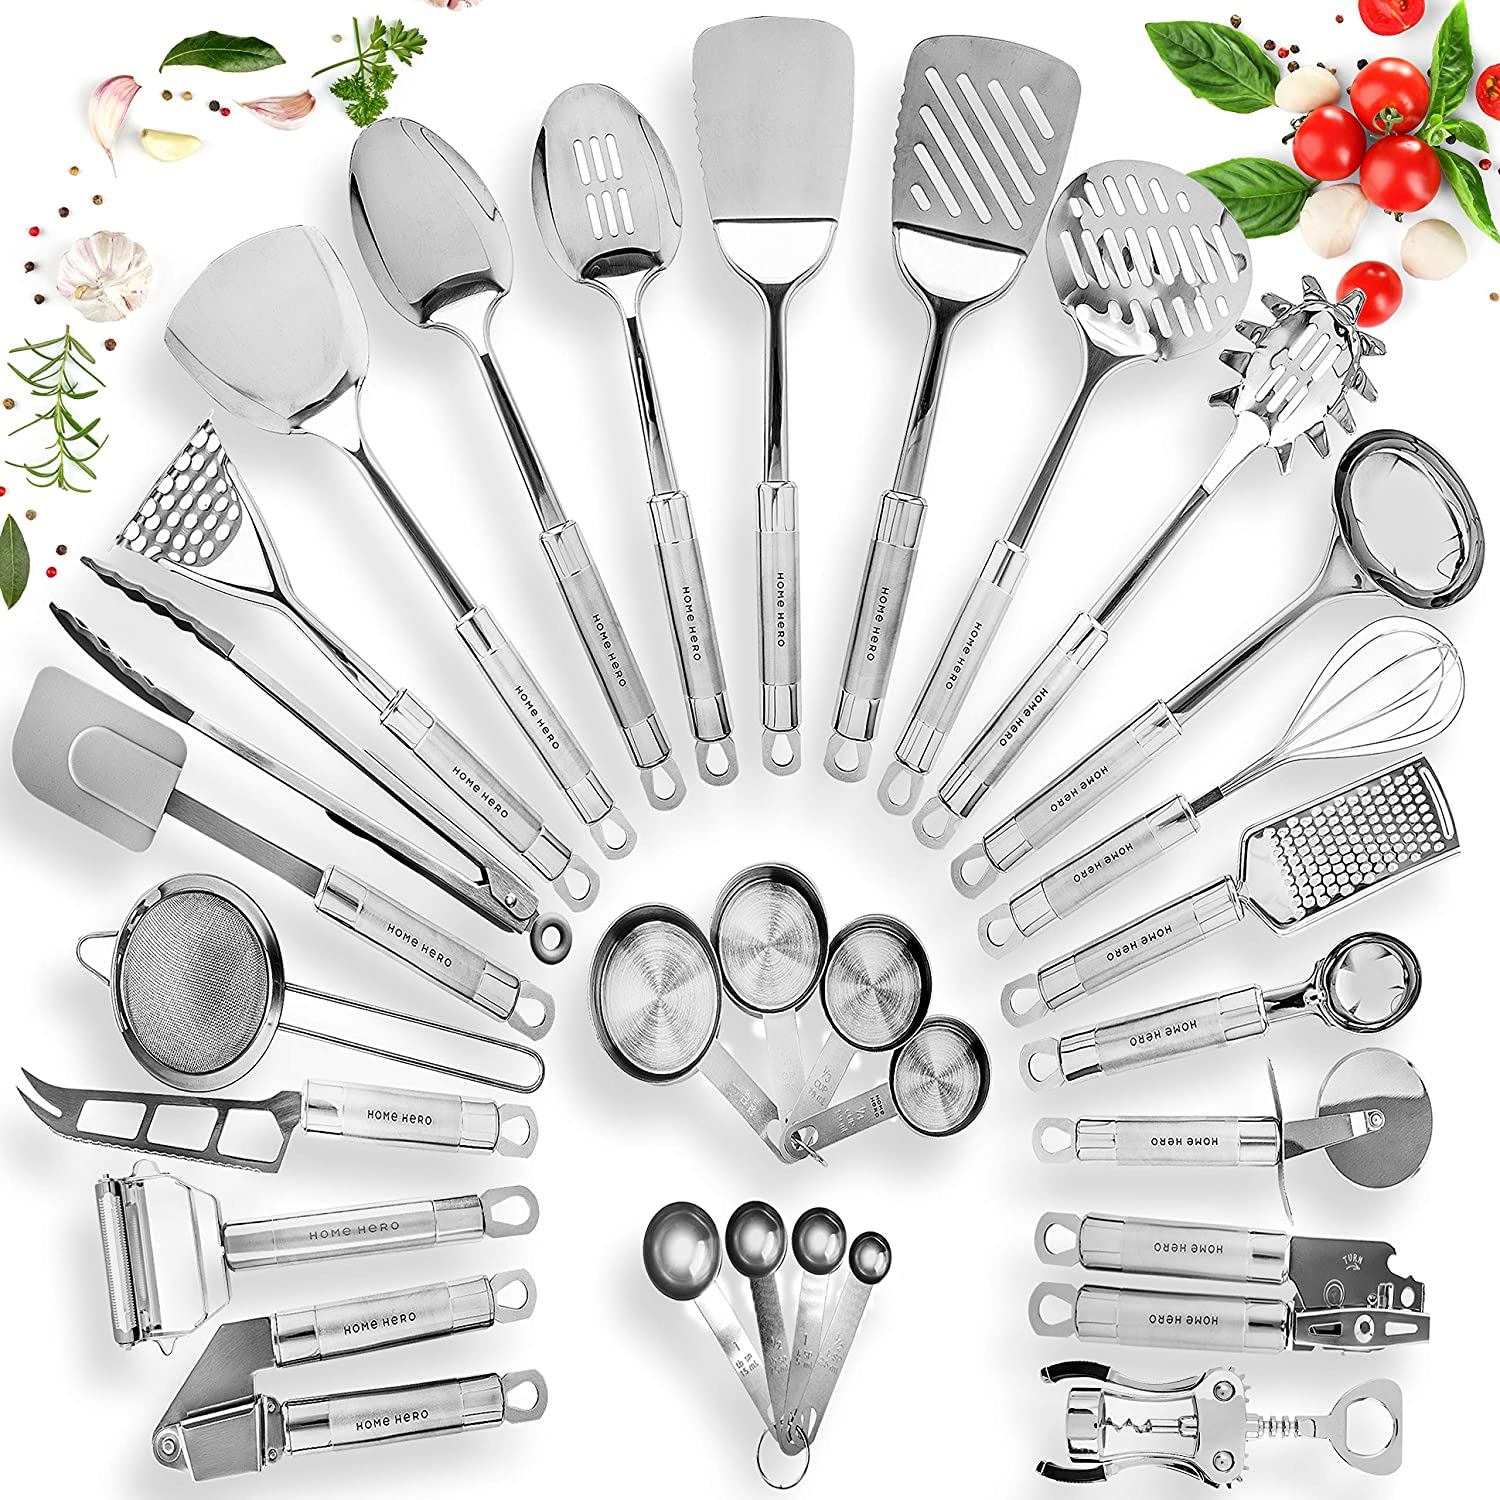 Details about Stainless Steel Kitchen Utensil Set - 29 Cooking Utensils -  Nonstick Kitchen...